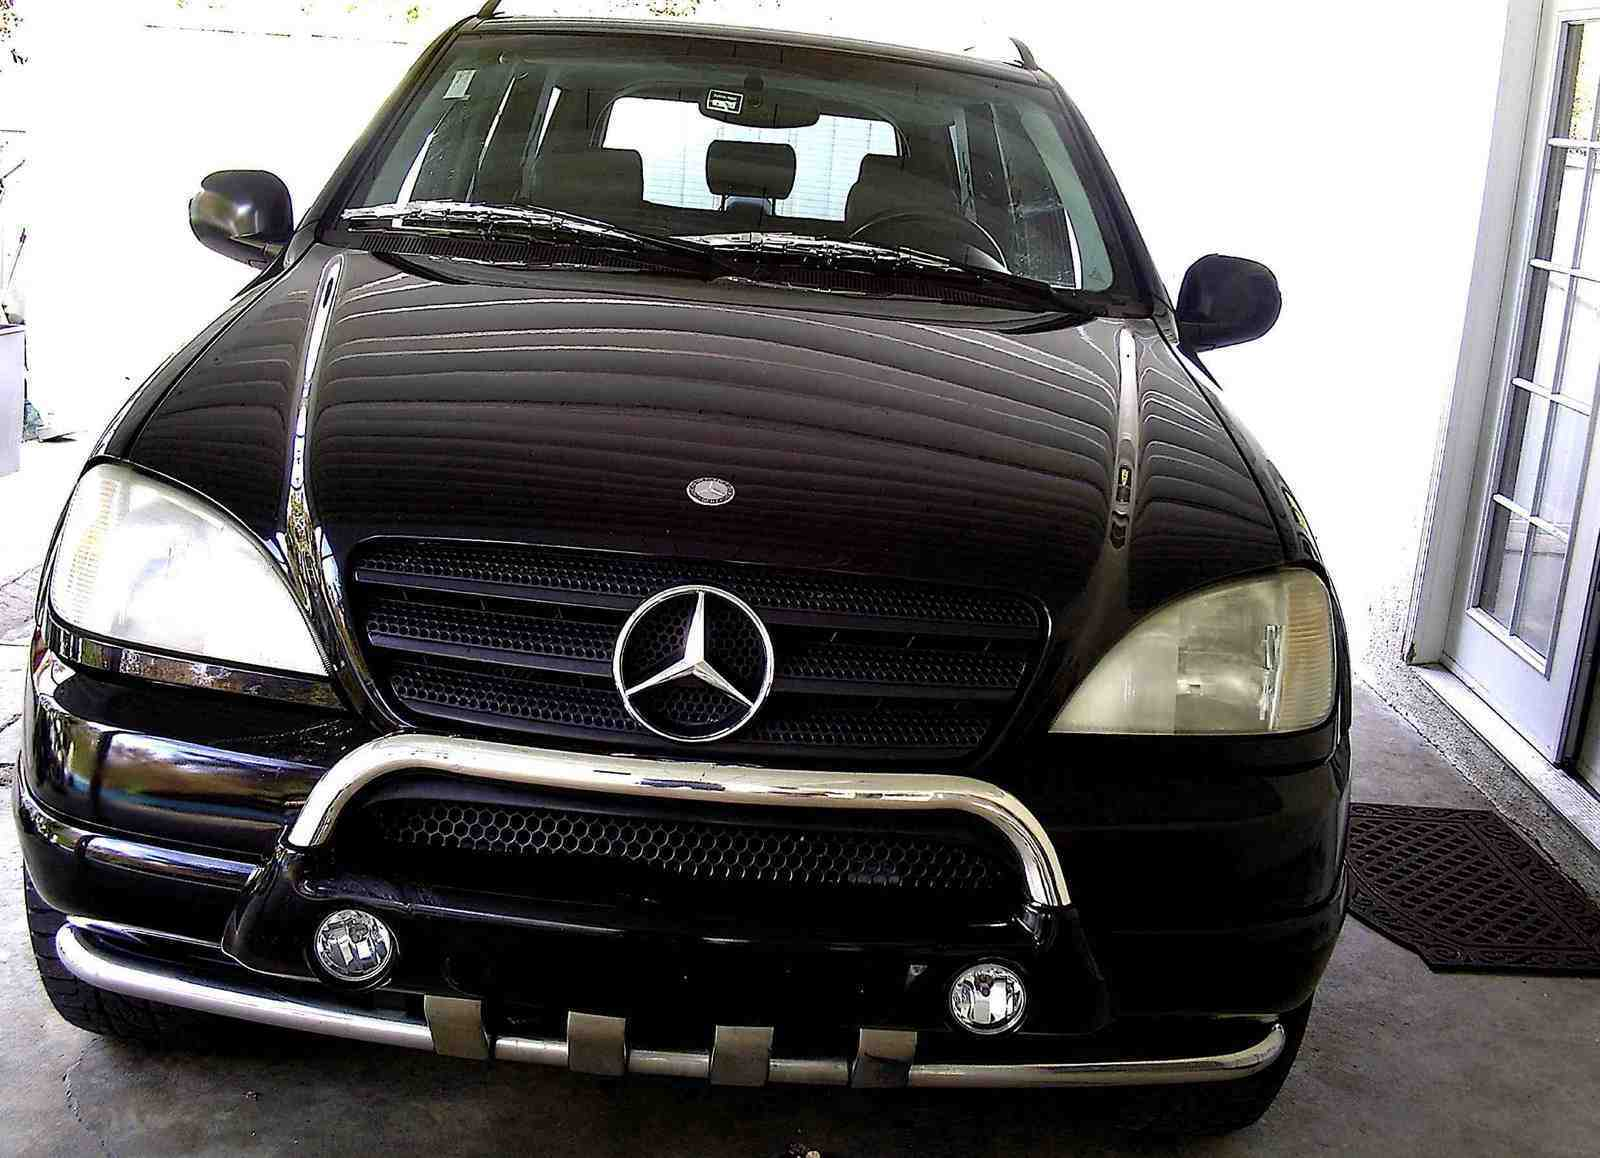 Im New Here I Just Bought A Brabus Mercedes Ml430 Please Help 1999 Fuel Filter Click Image For Larger Version Name Digi00012 Views 1232 Size 1306